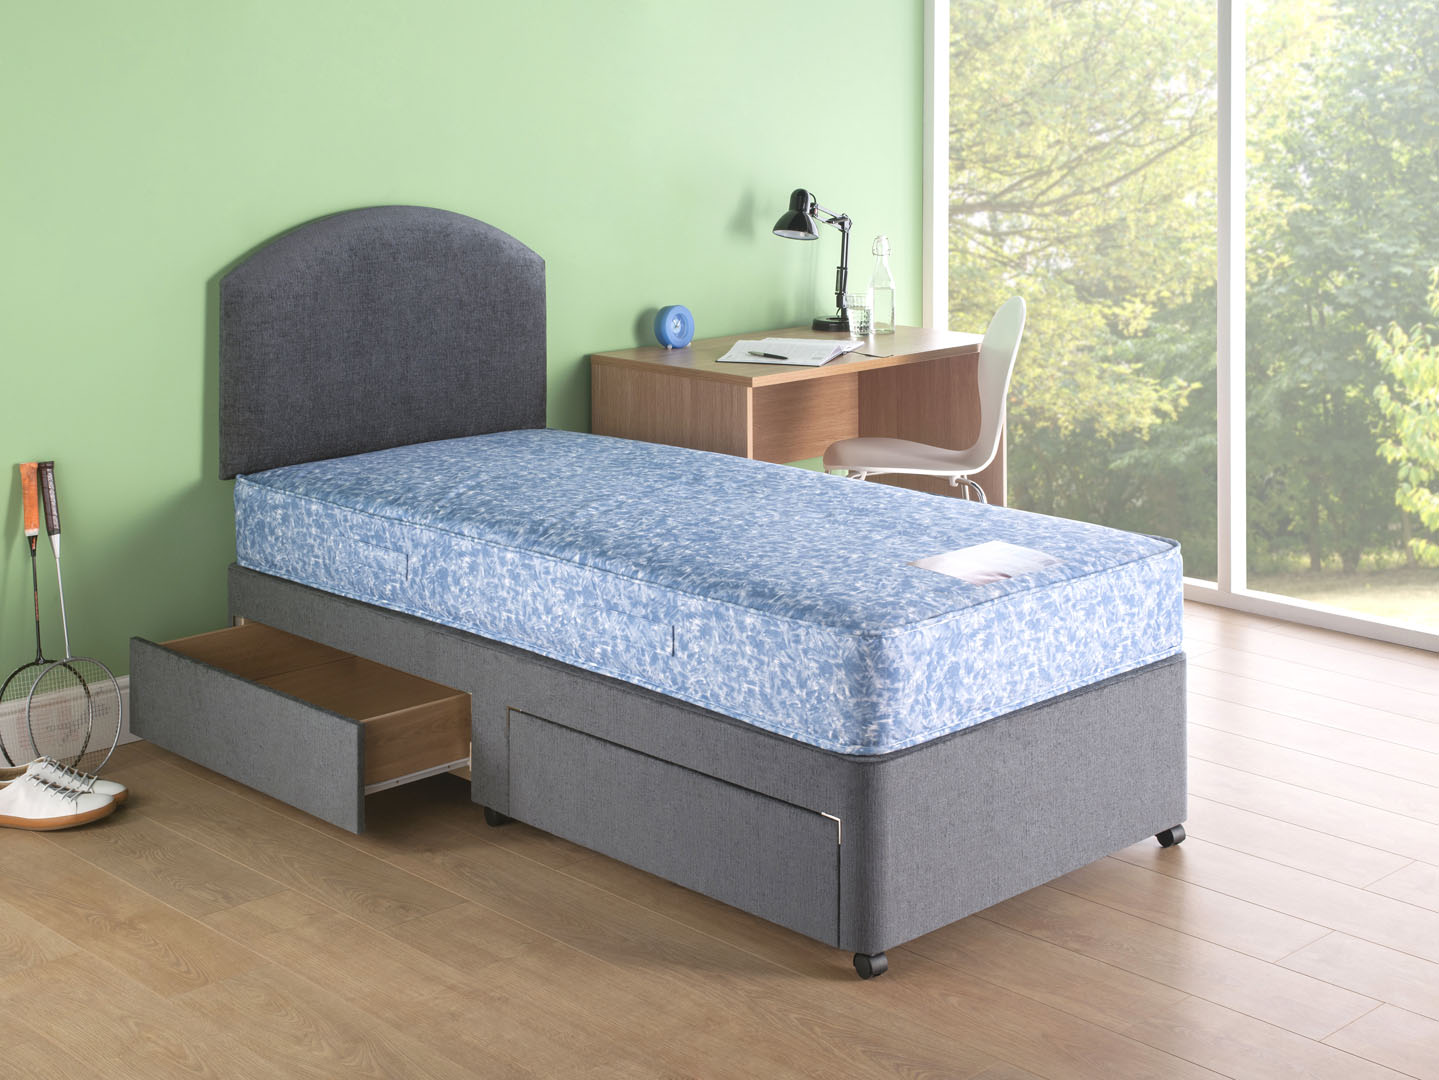 Neptune mattress with drawer base